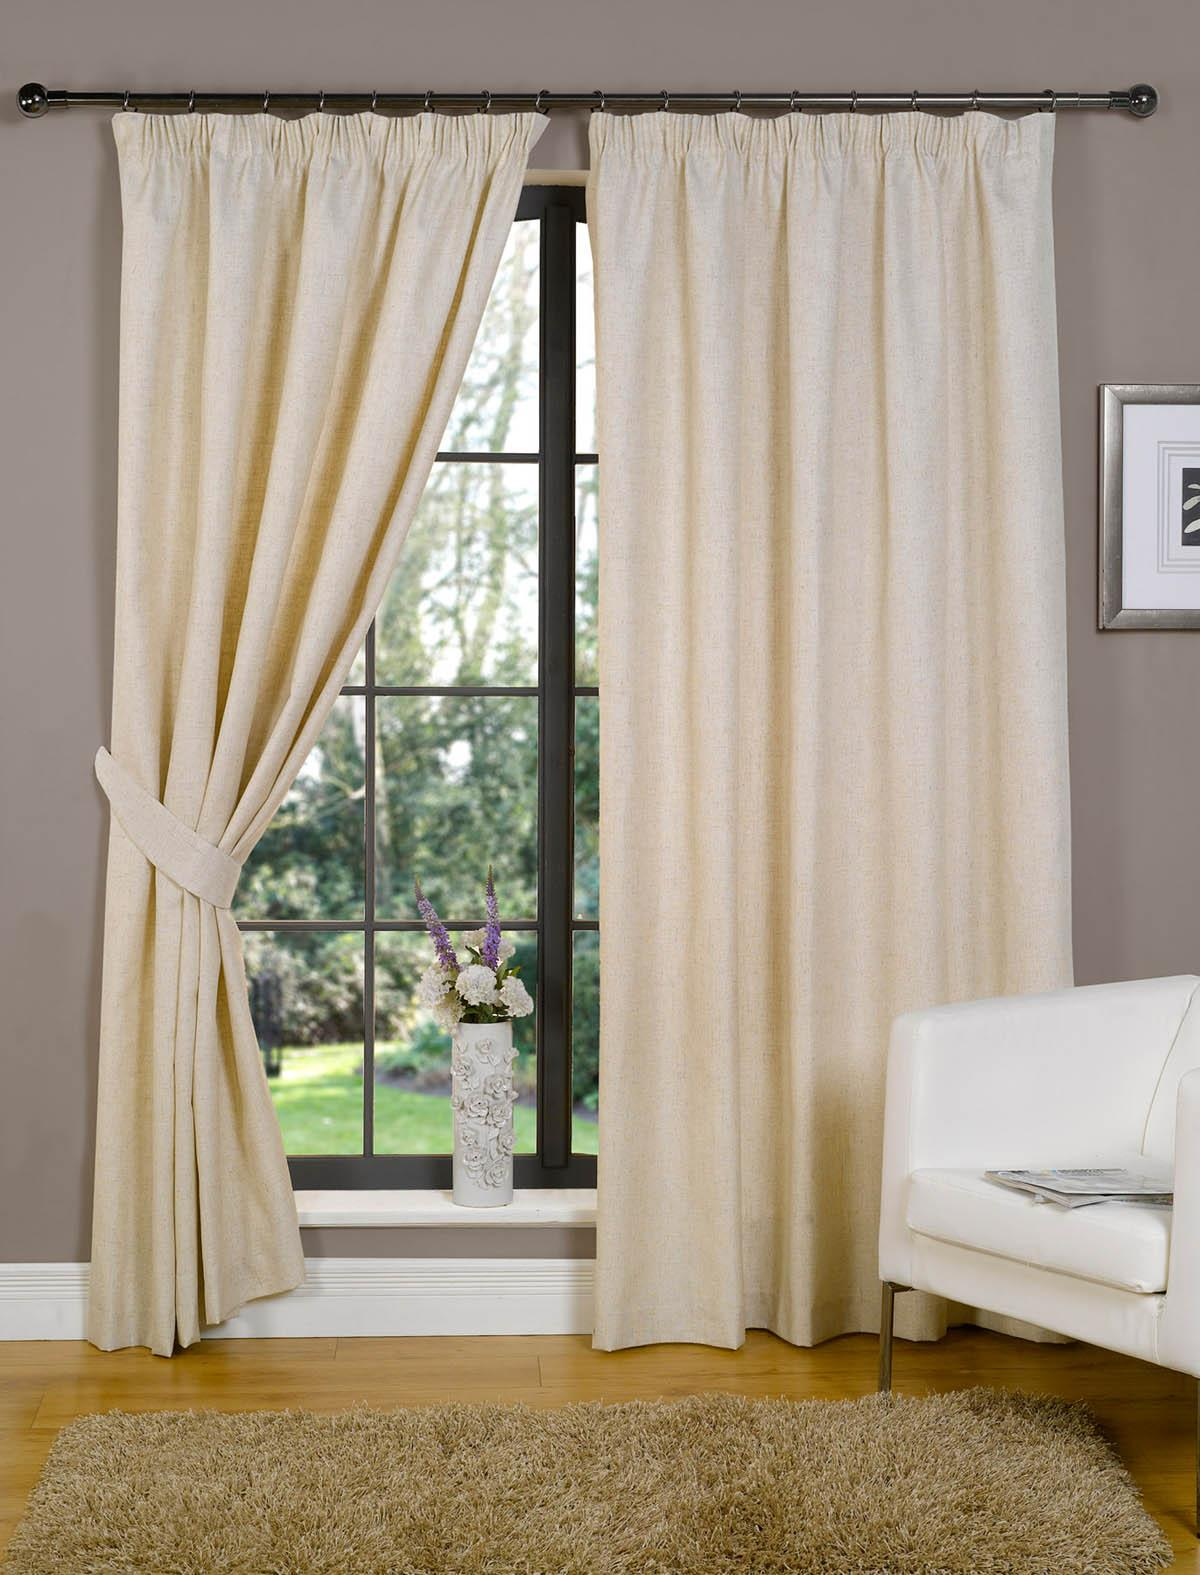 Buy Cheap Lined Curtains Compare Curtains Amp Blinds